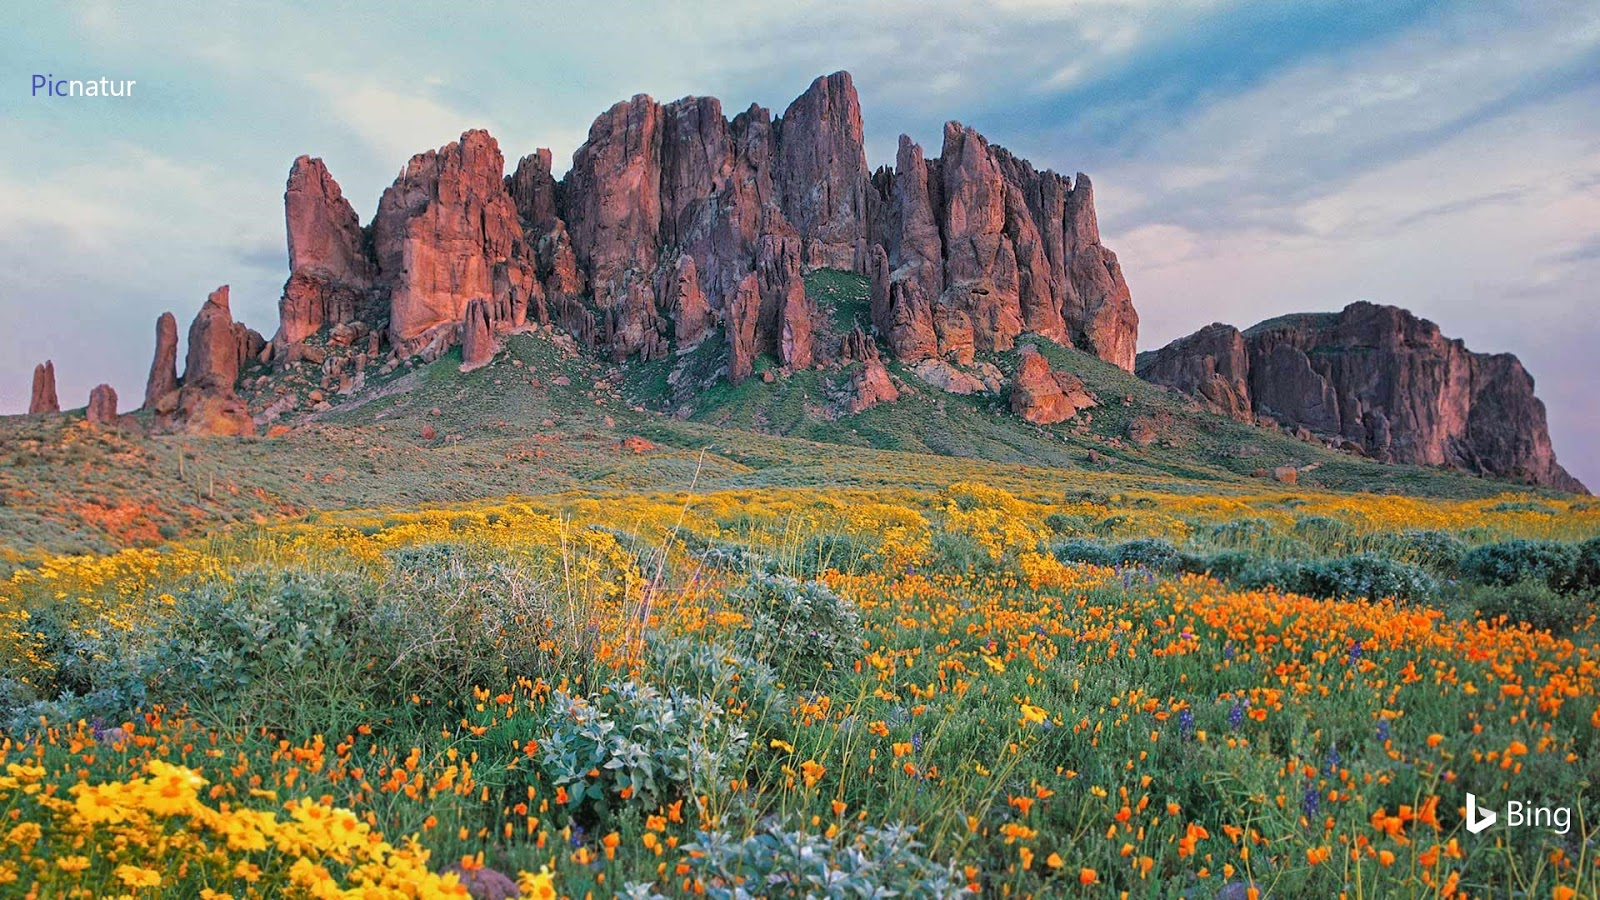 Wildflowers in bloom at Lost Dutchman State Park in Arizona © Tim Fitzharris/Minden Pictures